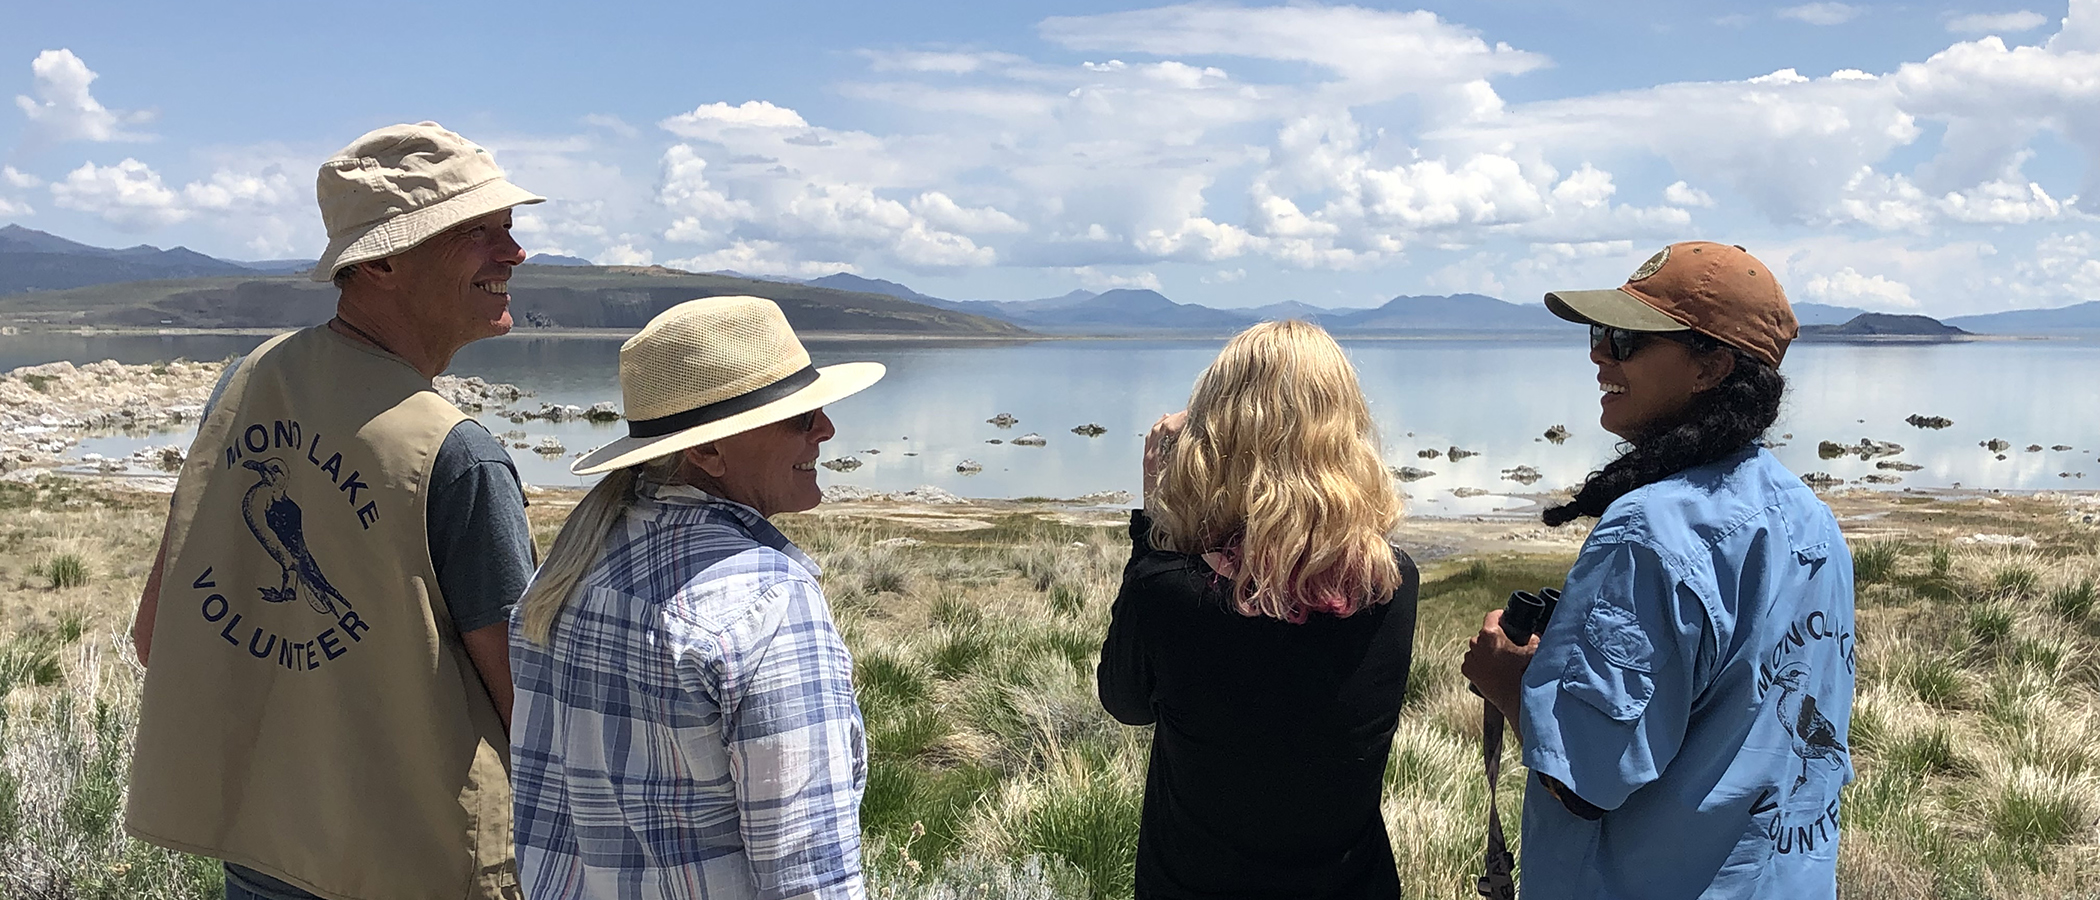 Four people overlooking Mono Lake on a bright sunny day smile at eachother while one looks through binoculars and tow of them have official Mono Lake Volunteer shirts and vests.